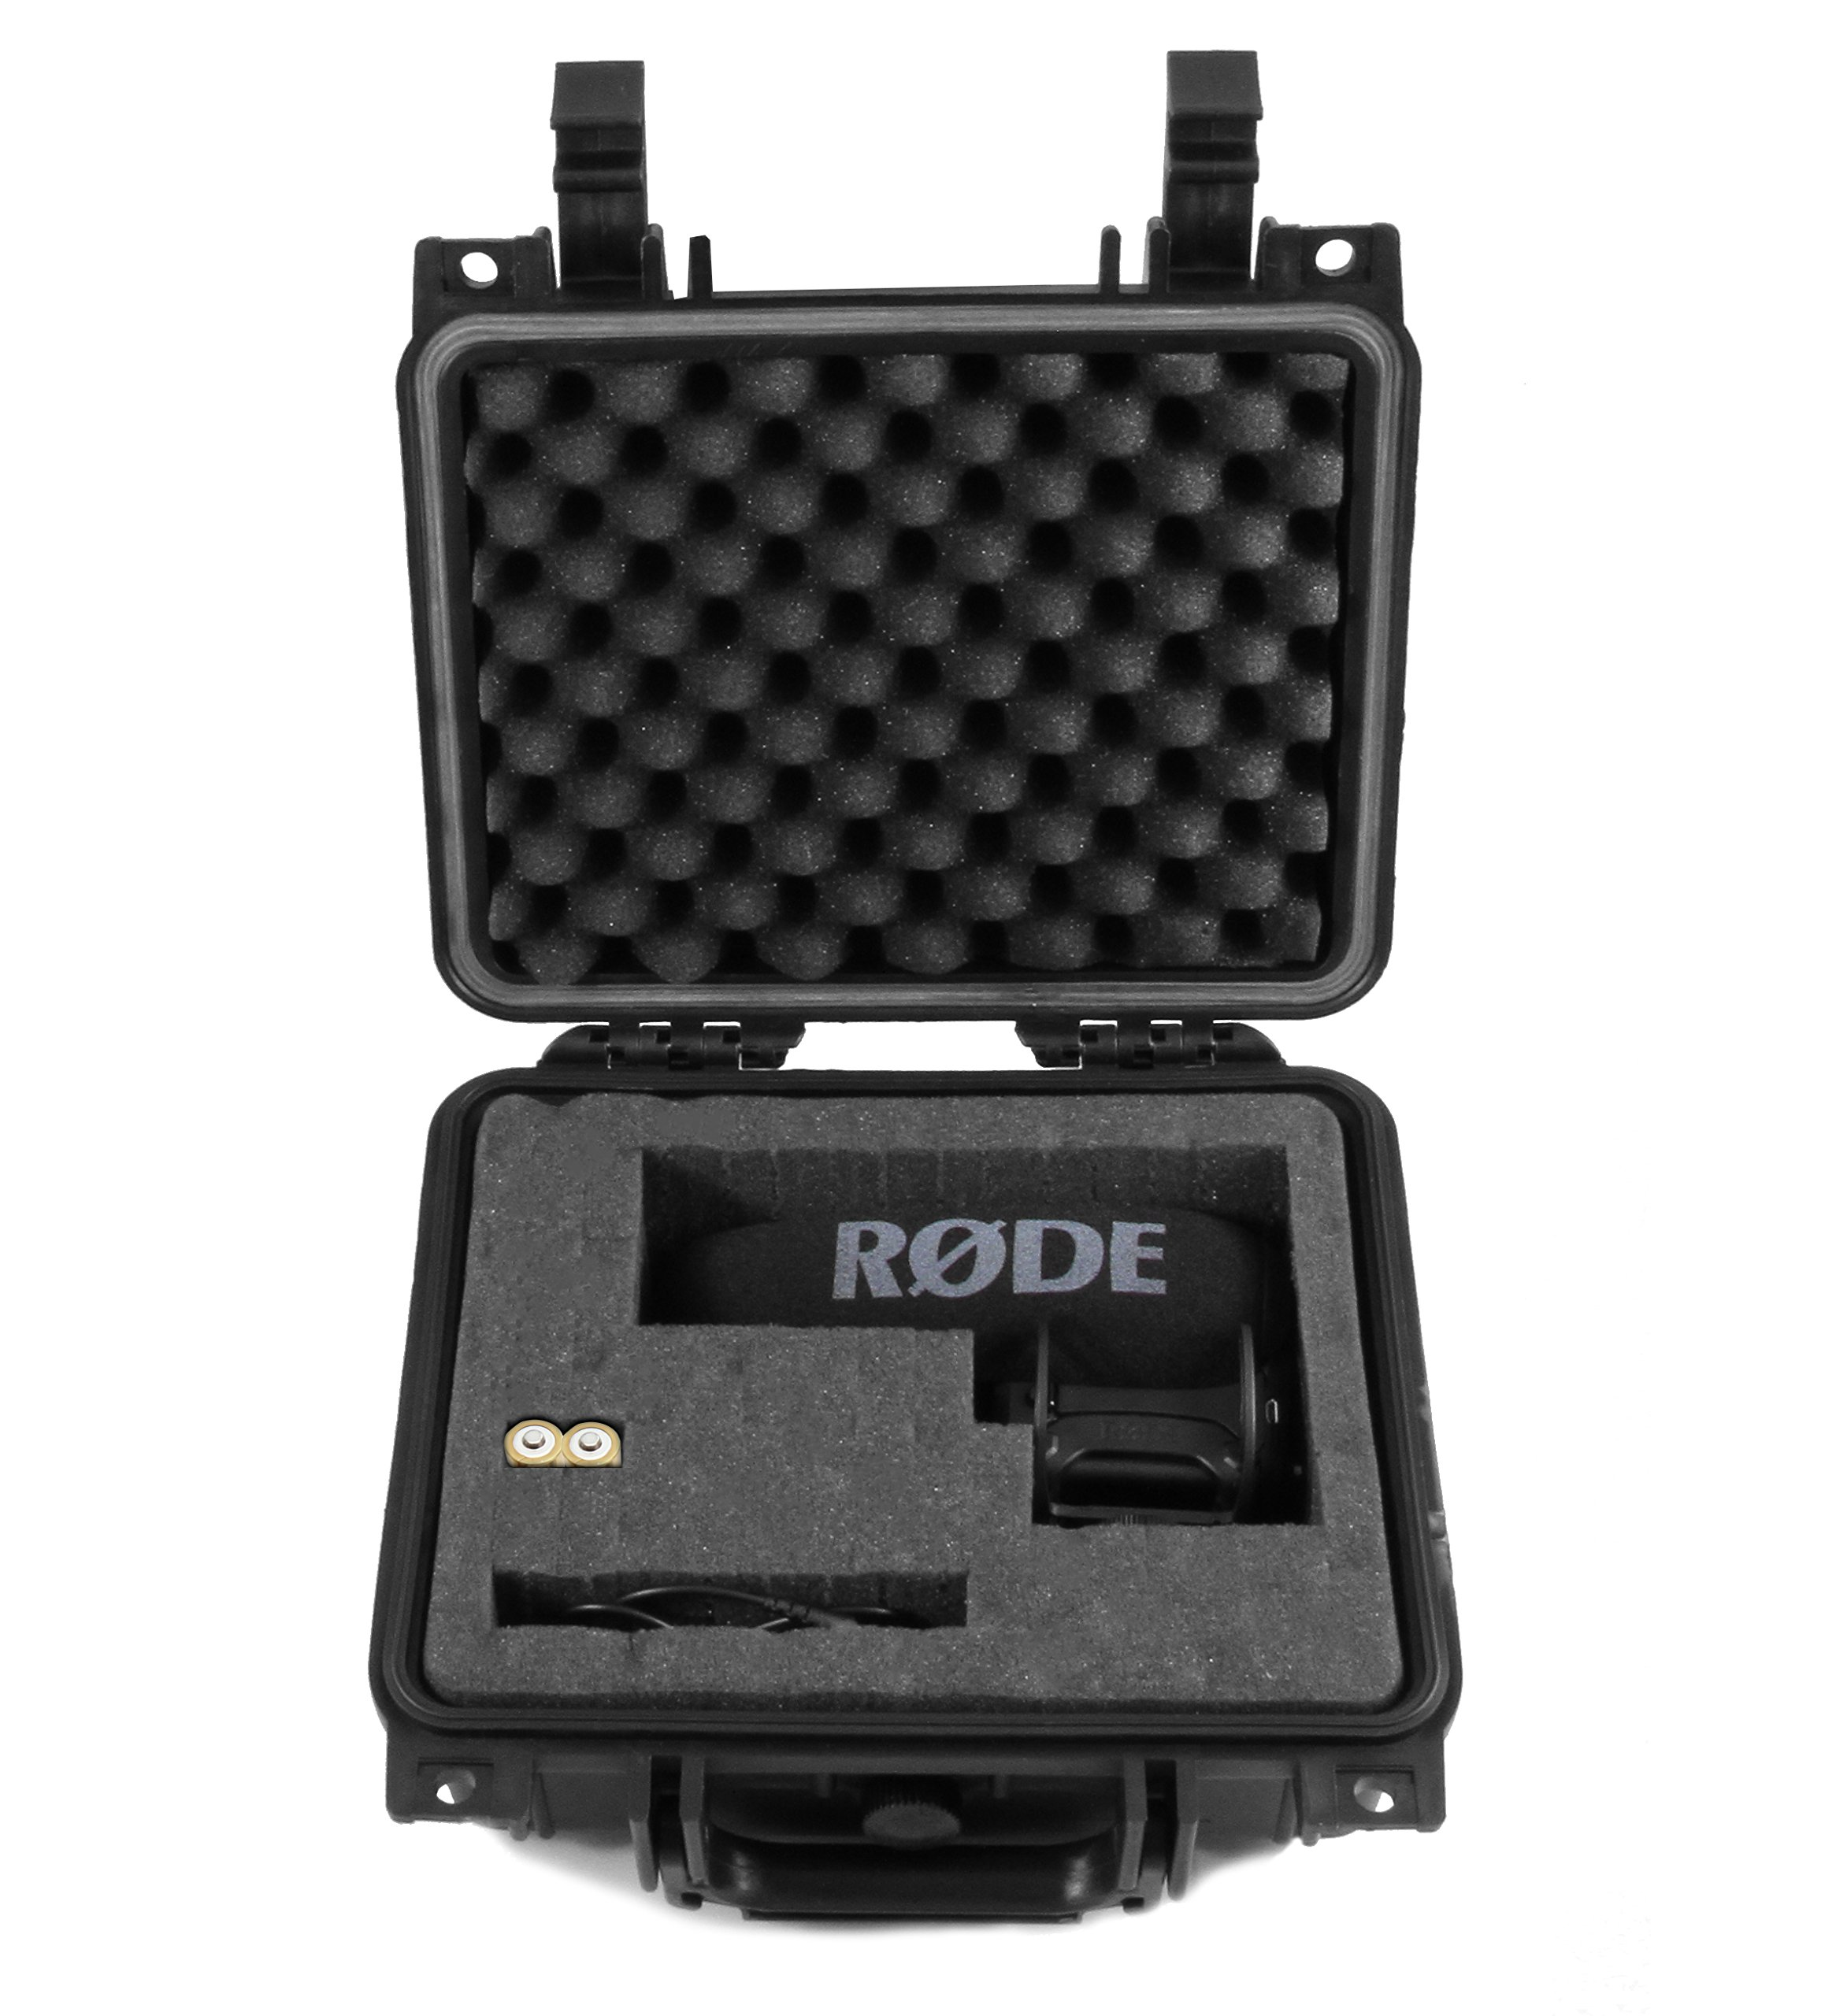 "CASEMATIX 11"" Airtight Camera Microphone Case For Rode VideoMic Pro+ On Camera Shotgun Condenser Microphone w/Rycote Lyre, VMPR VideoMic Pro R, 3.5mm TRS Cable, Charge Cable, Batteries and More"